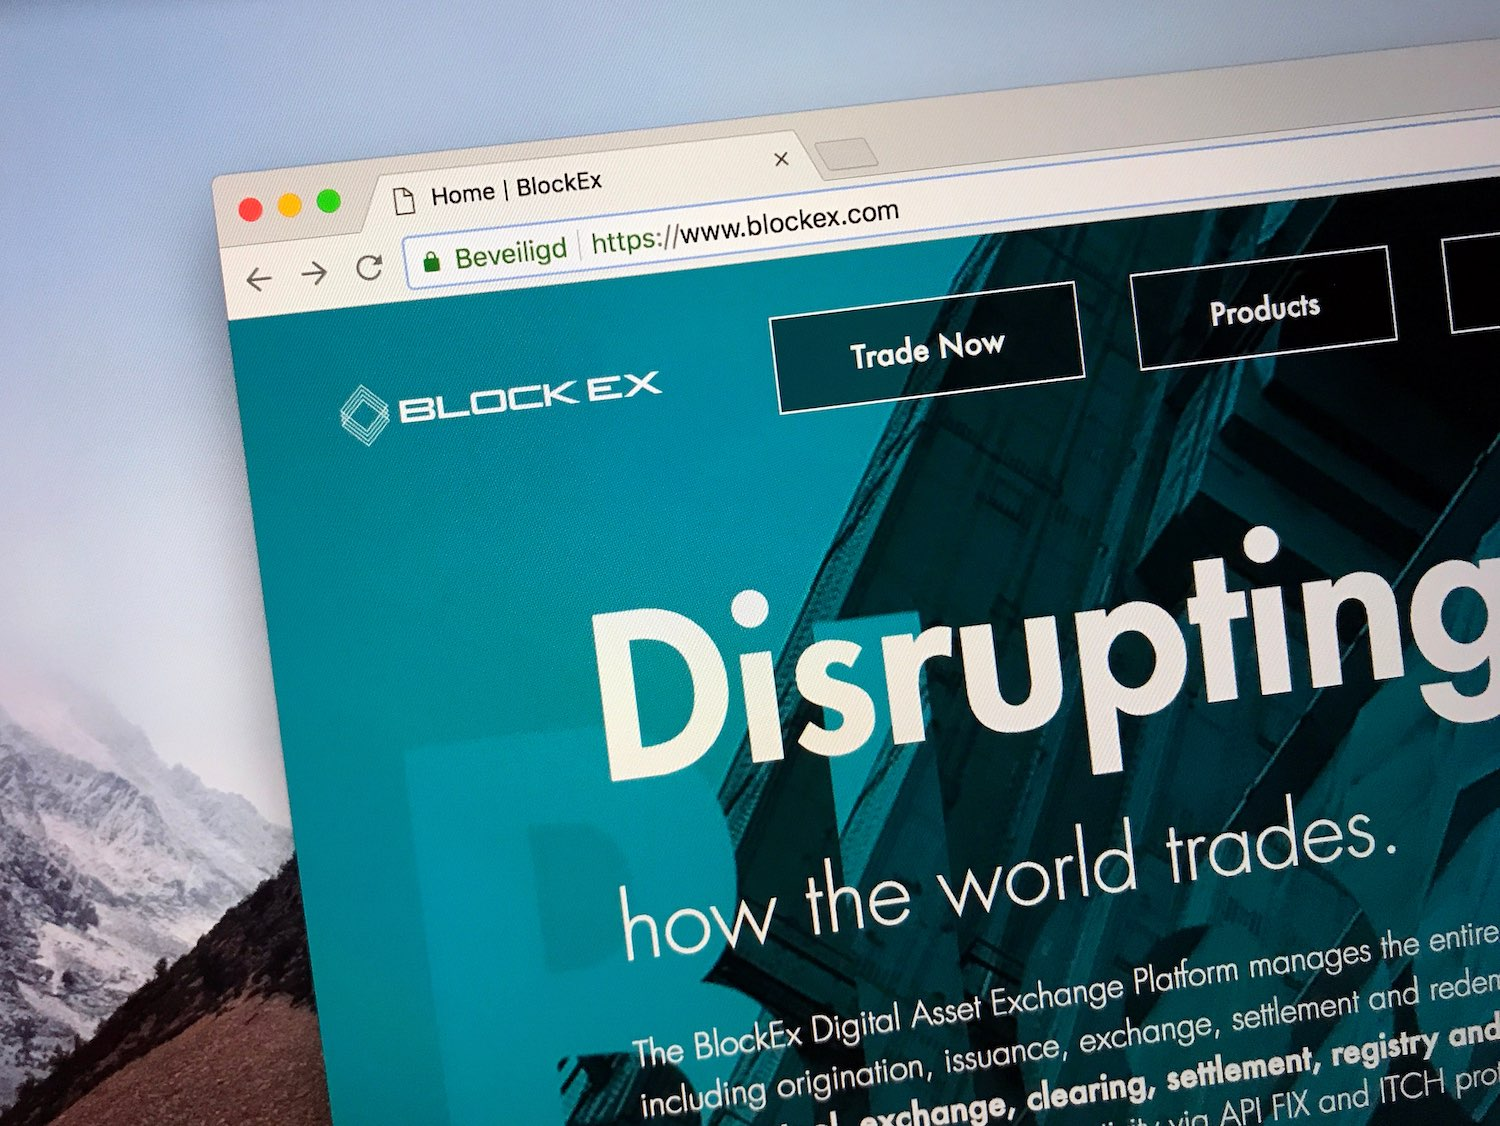 How BlockEx Went From a $24 Million ICO to Layoffs in Less Than a Year - CoinDesk